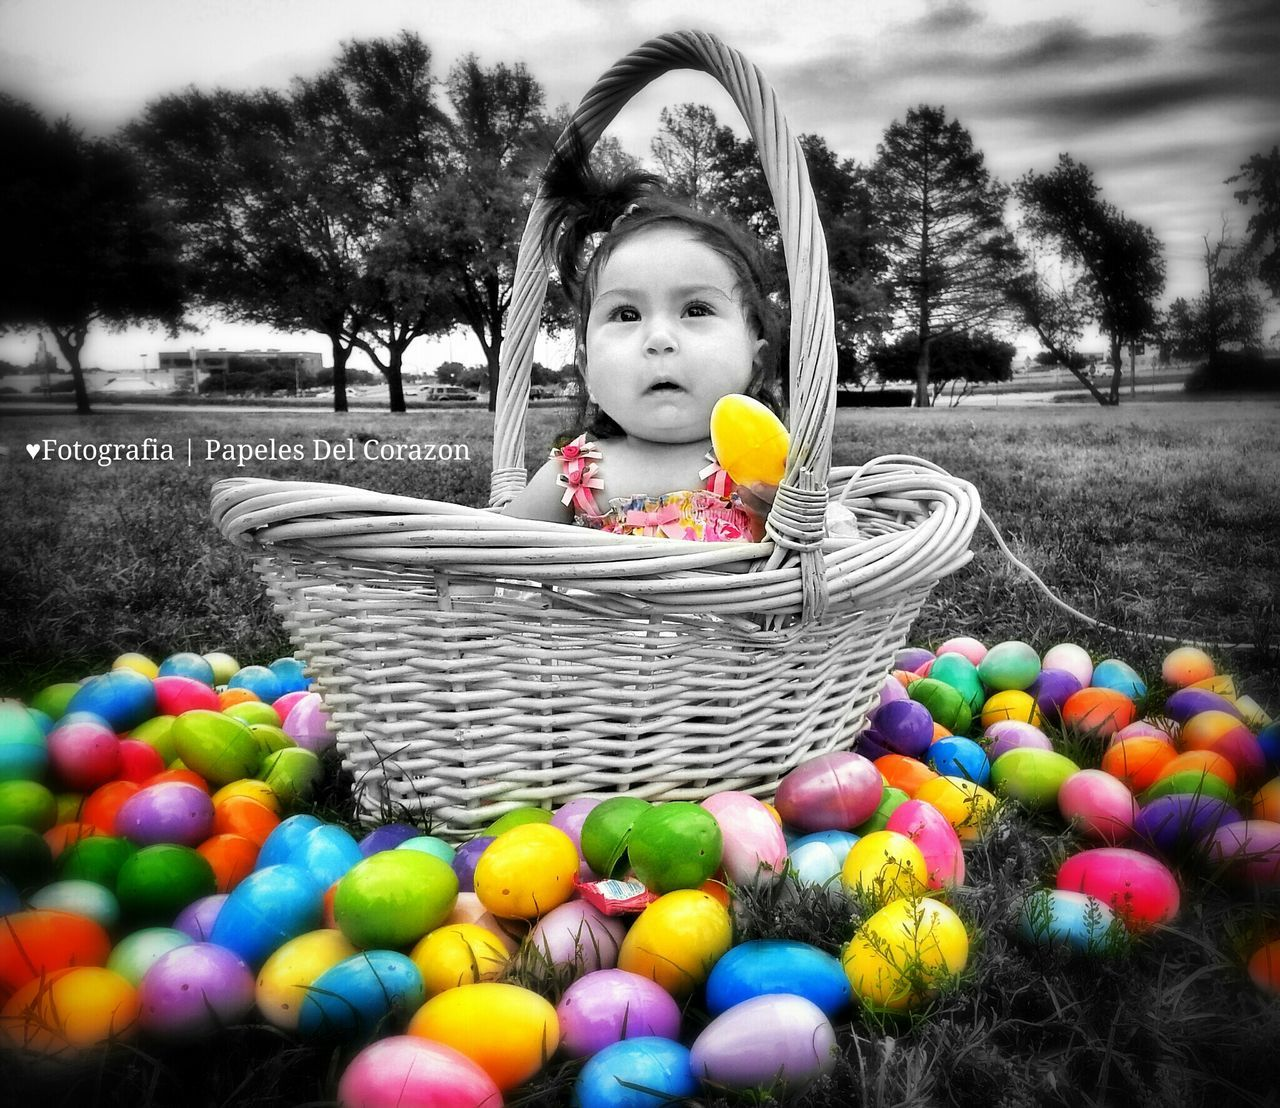 basket, childhood, real people, tree, outdoors, girls, one person, leisure activity, looking at camera, elementary age, day, portrait, lifestyles, cute, grass, sky